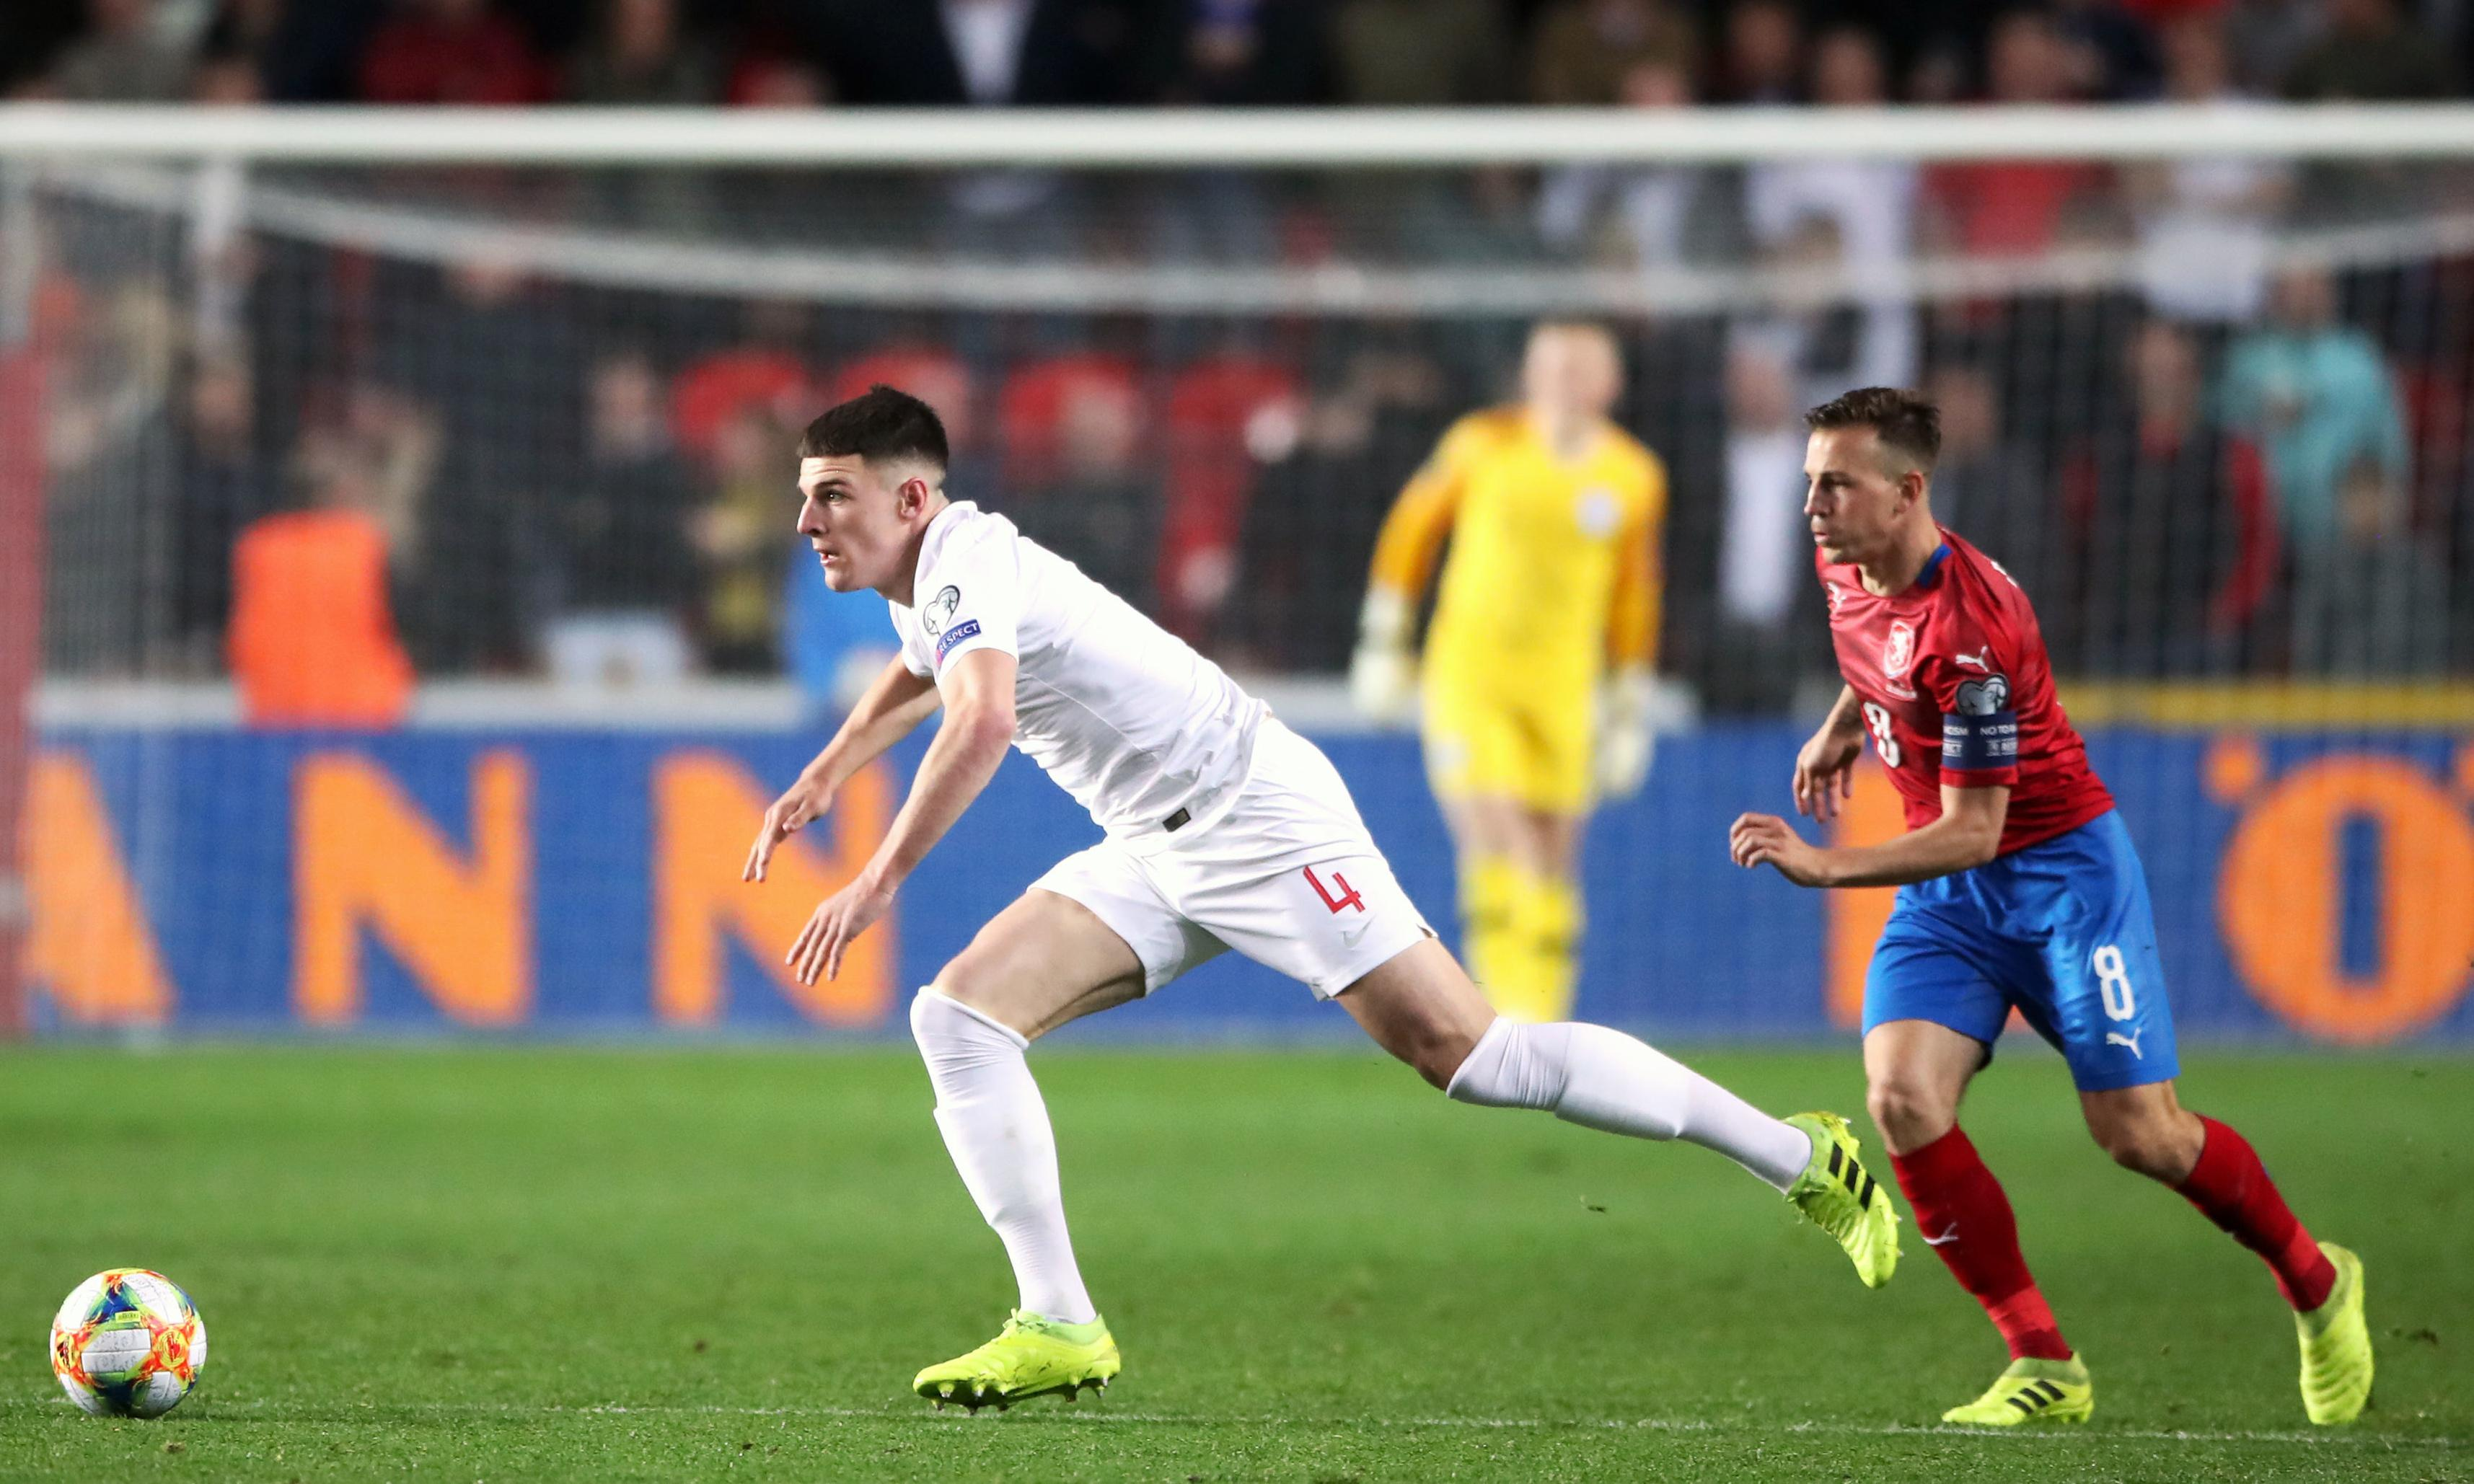 Declan Rice: 'I don't get fazed so easily – I've had to deal with a lot'